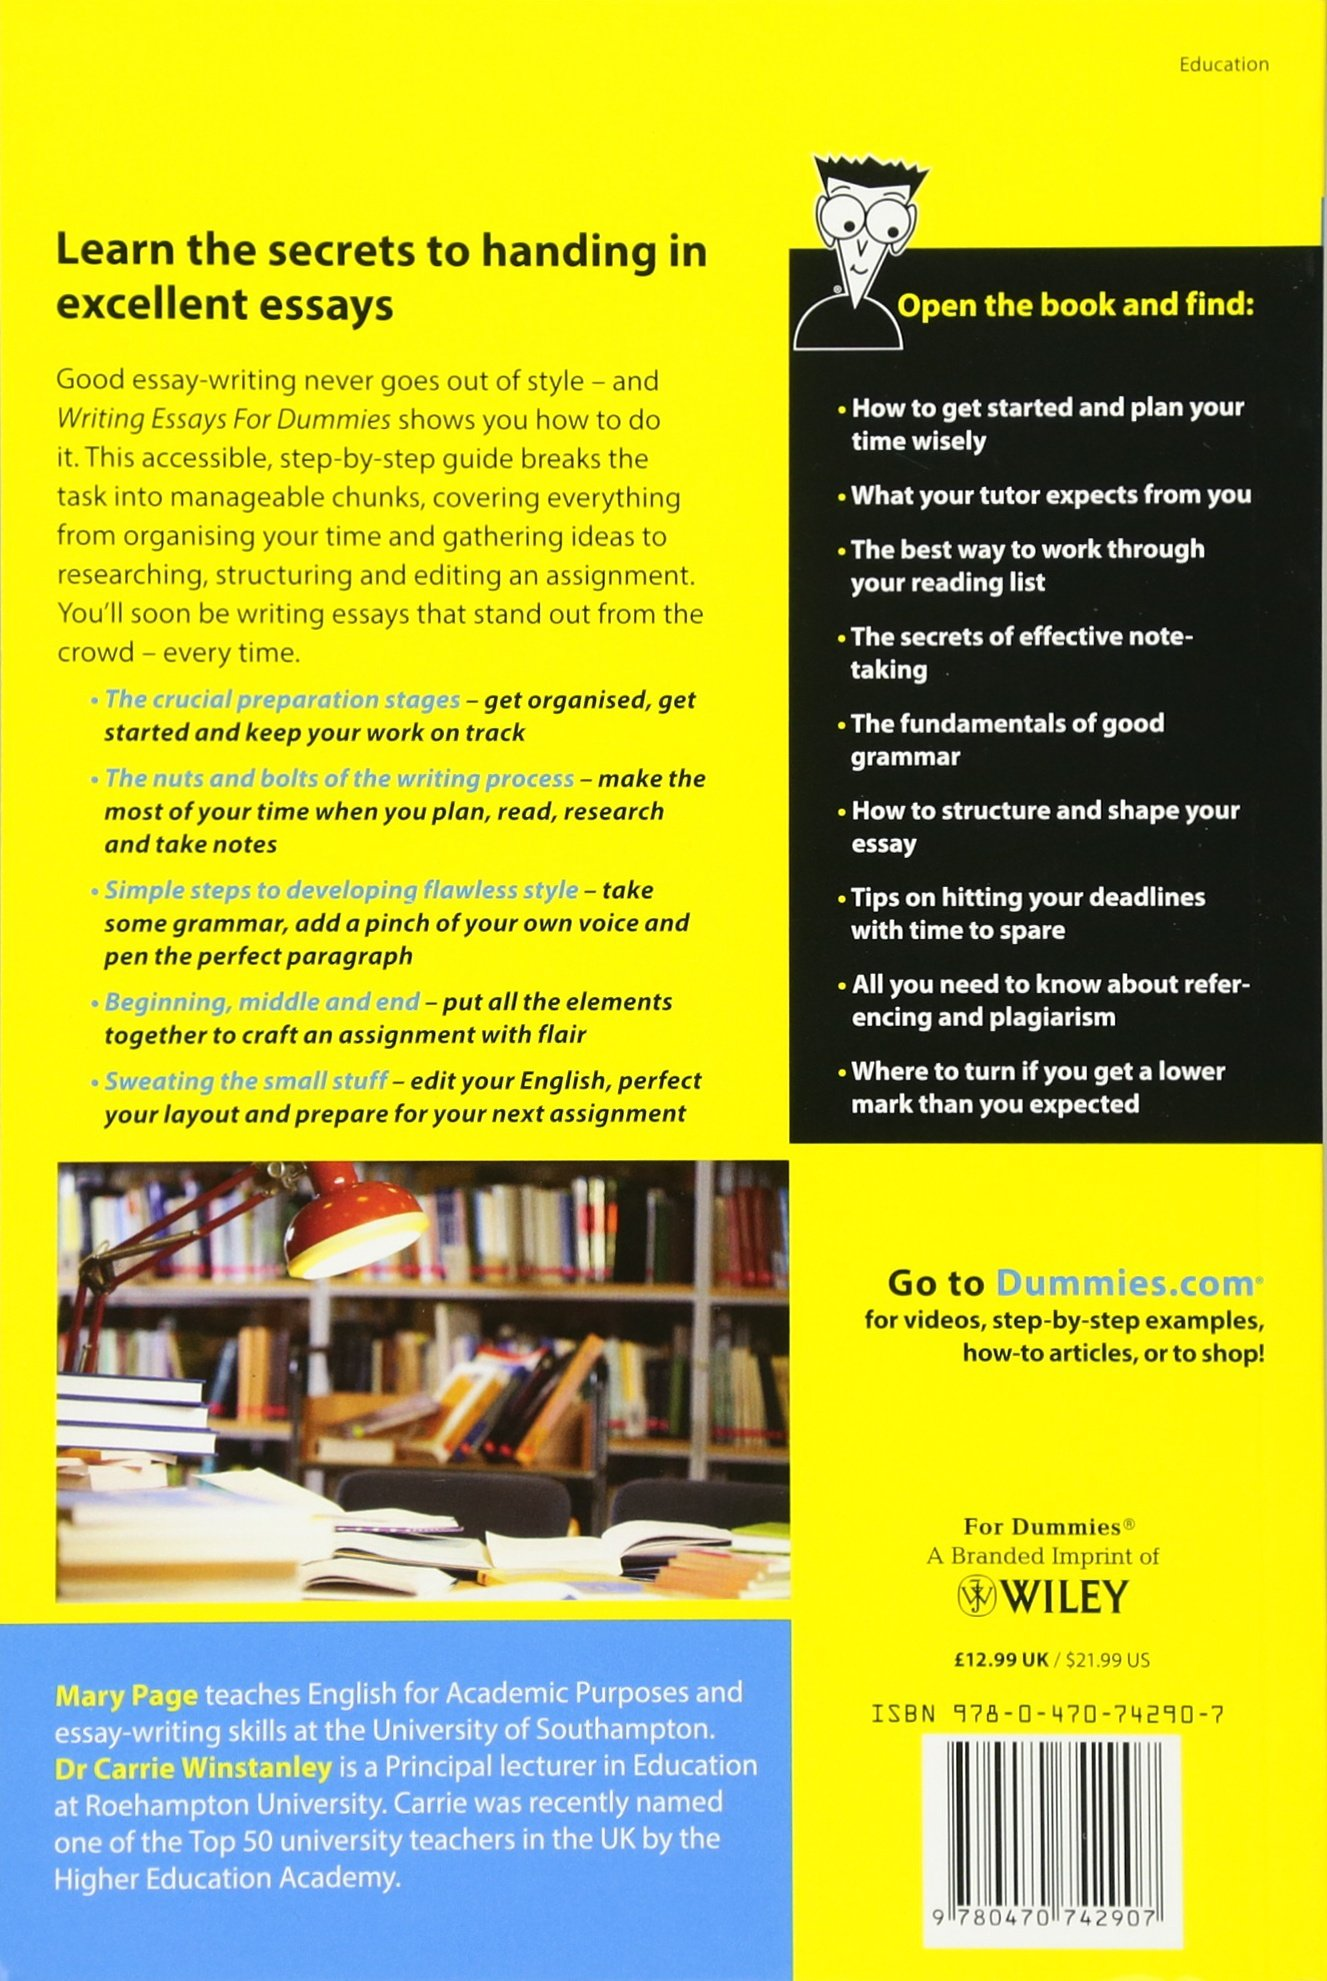 College essay writing for dummies